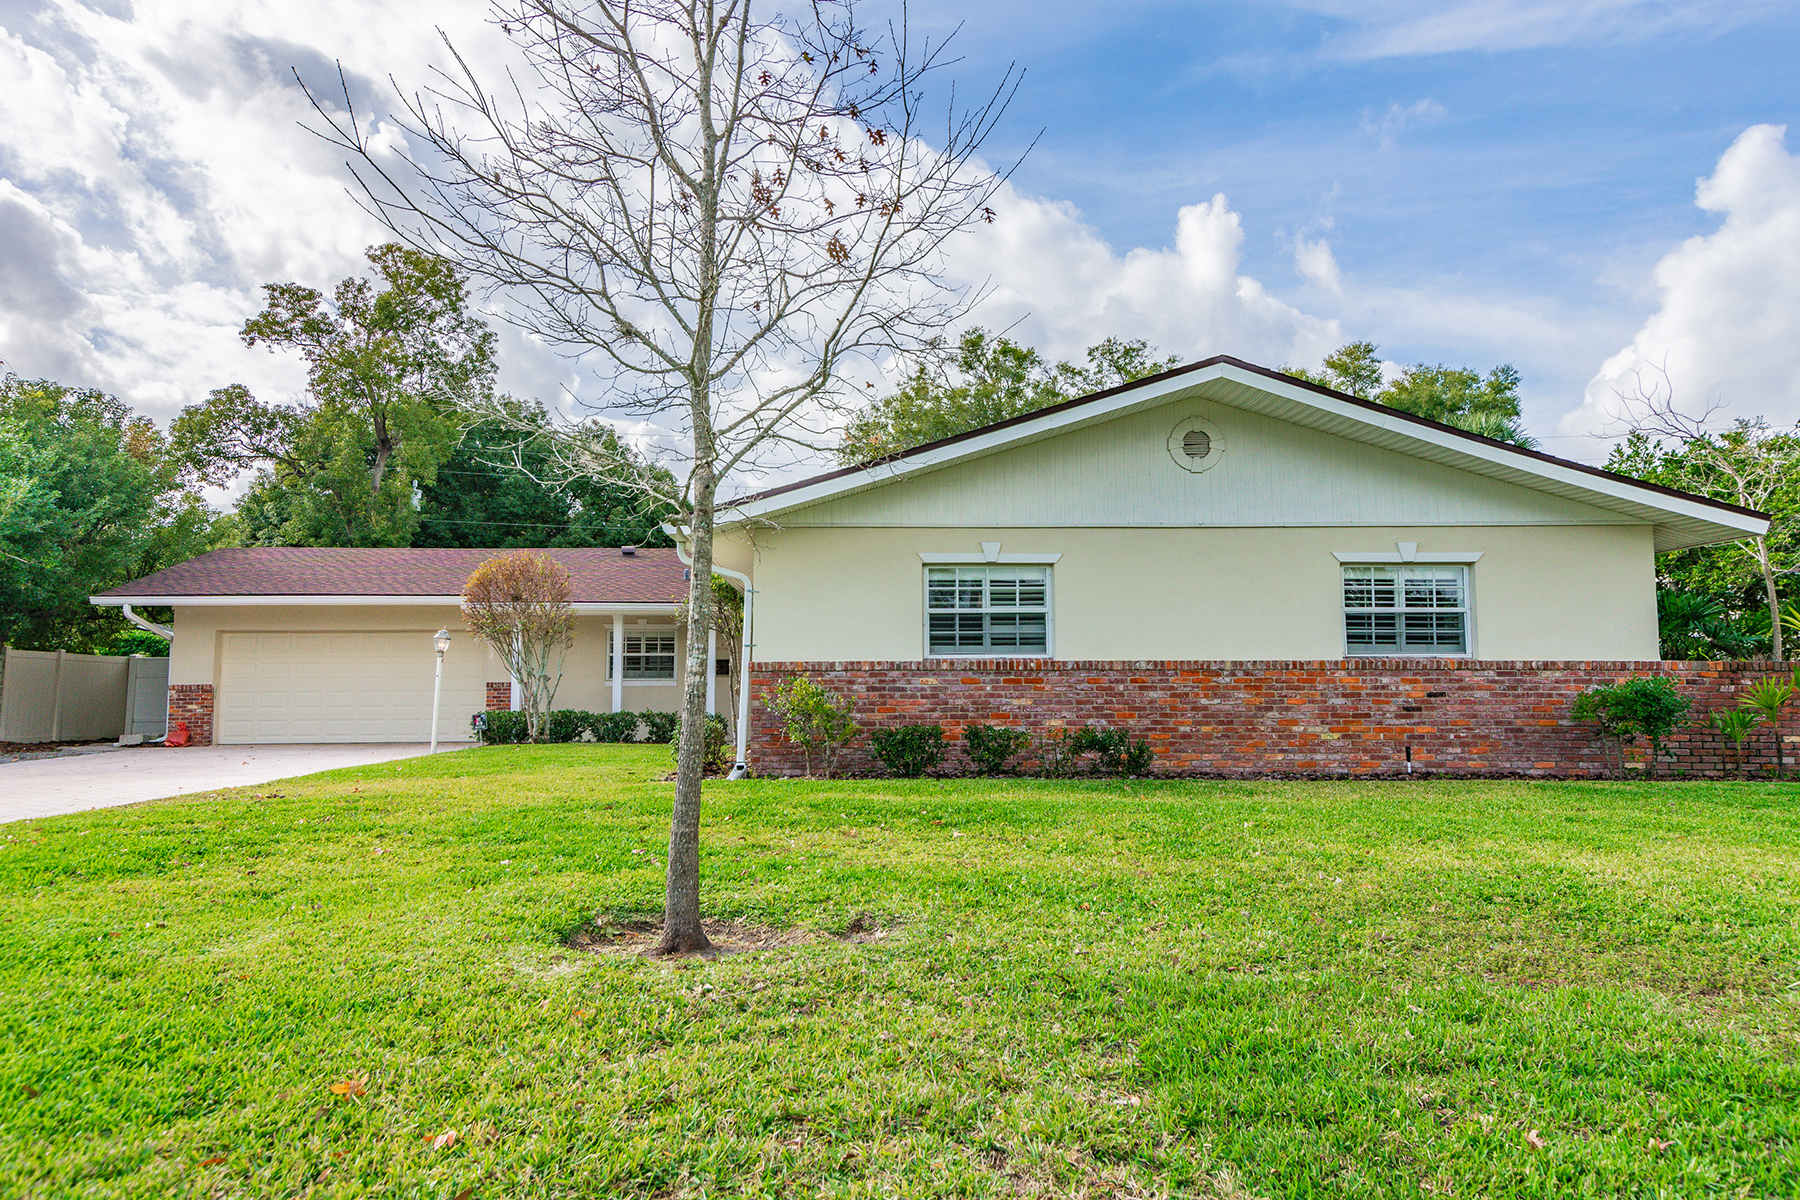 Single Family Homes for Sale at MAITLAND 941 N Thistle Ln Maitland, Florida 32751 United States